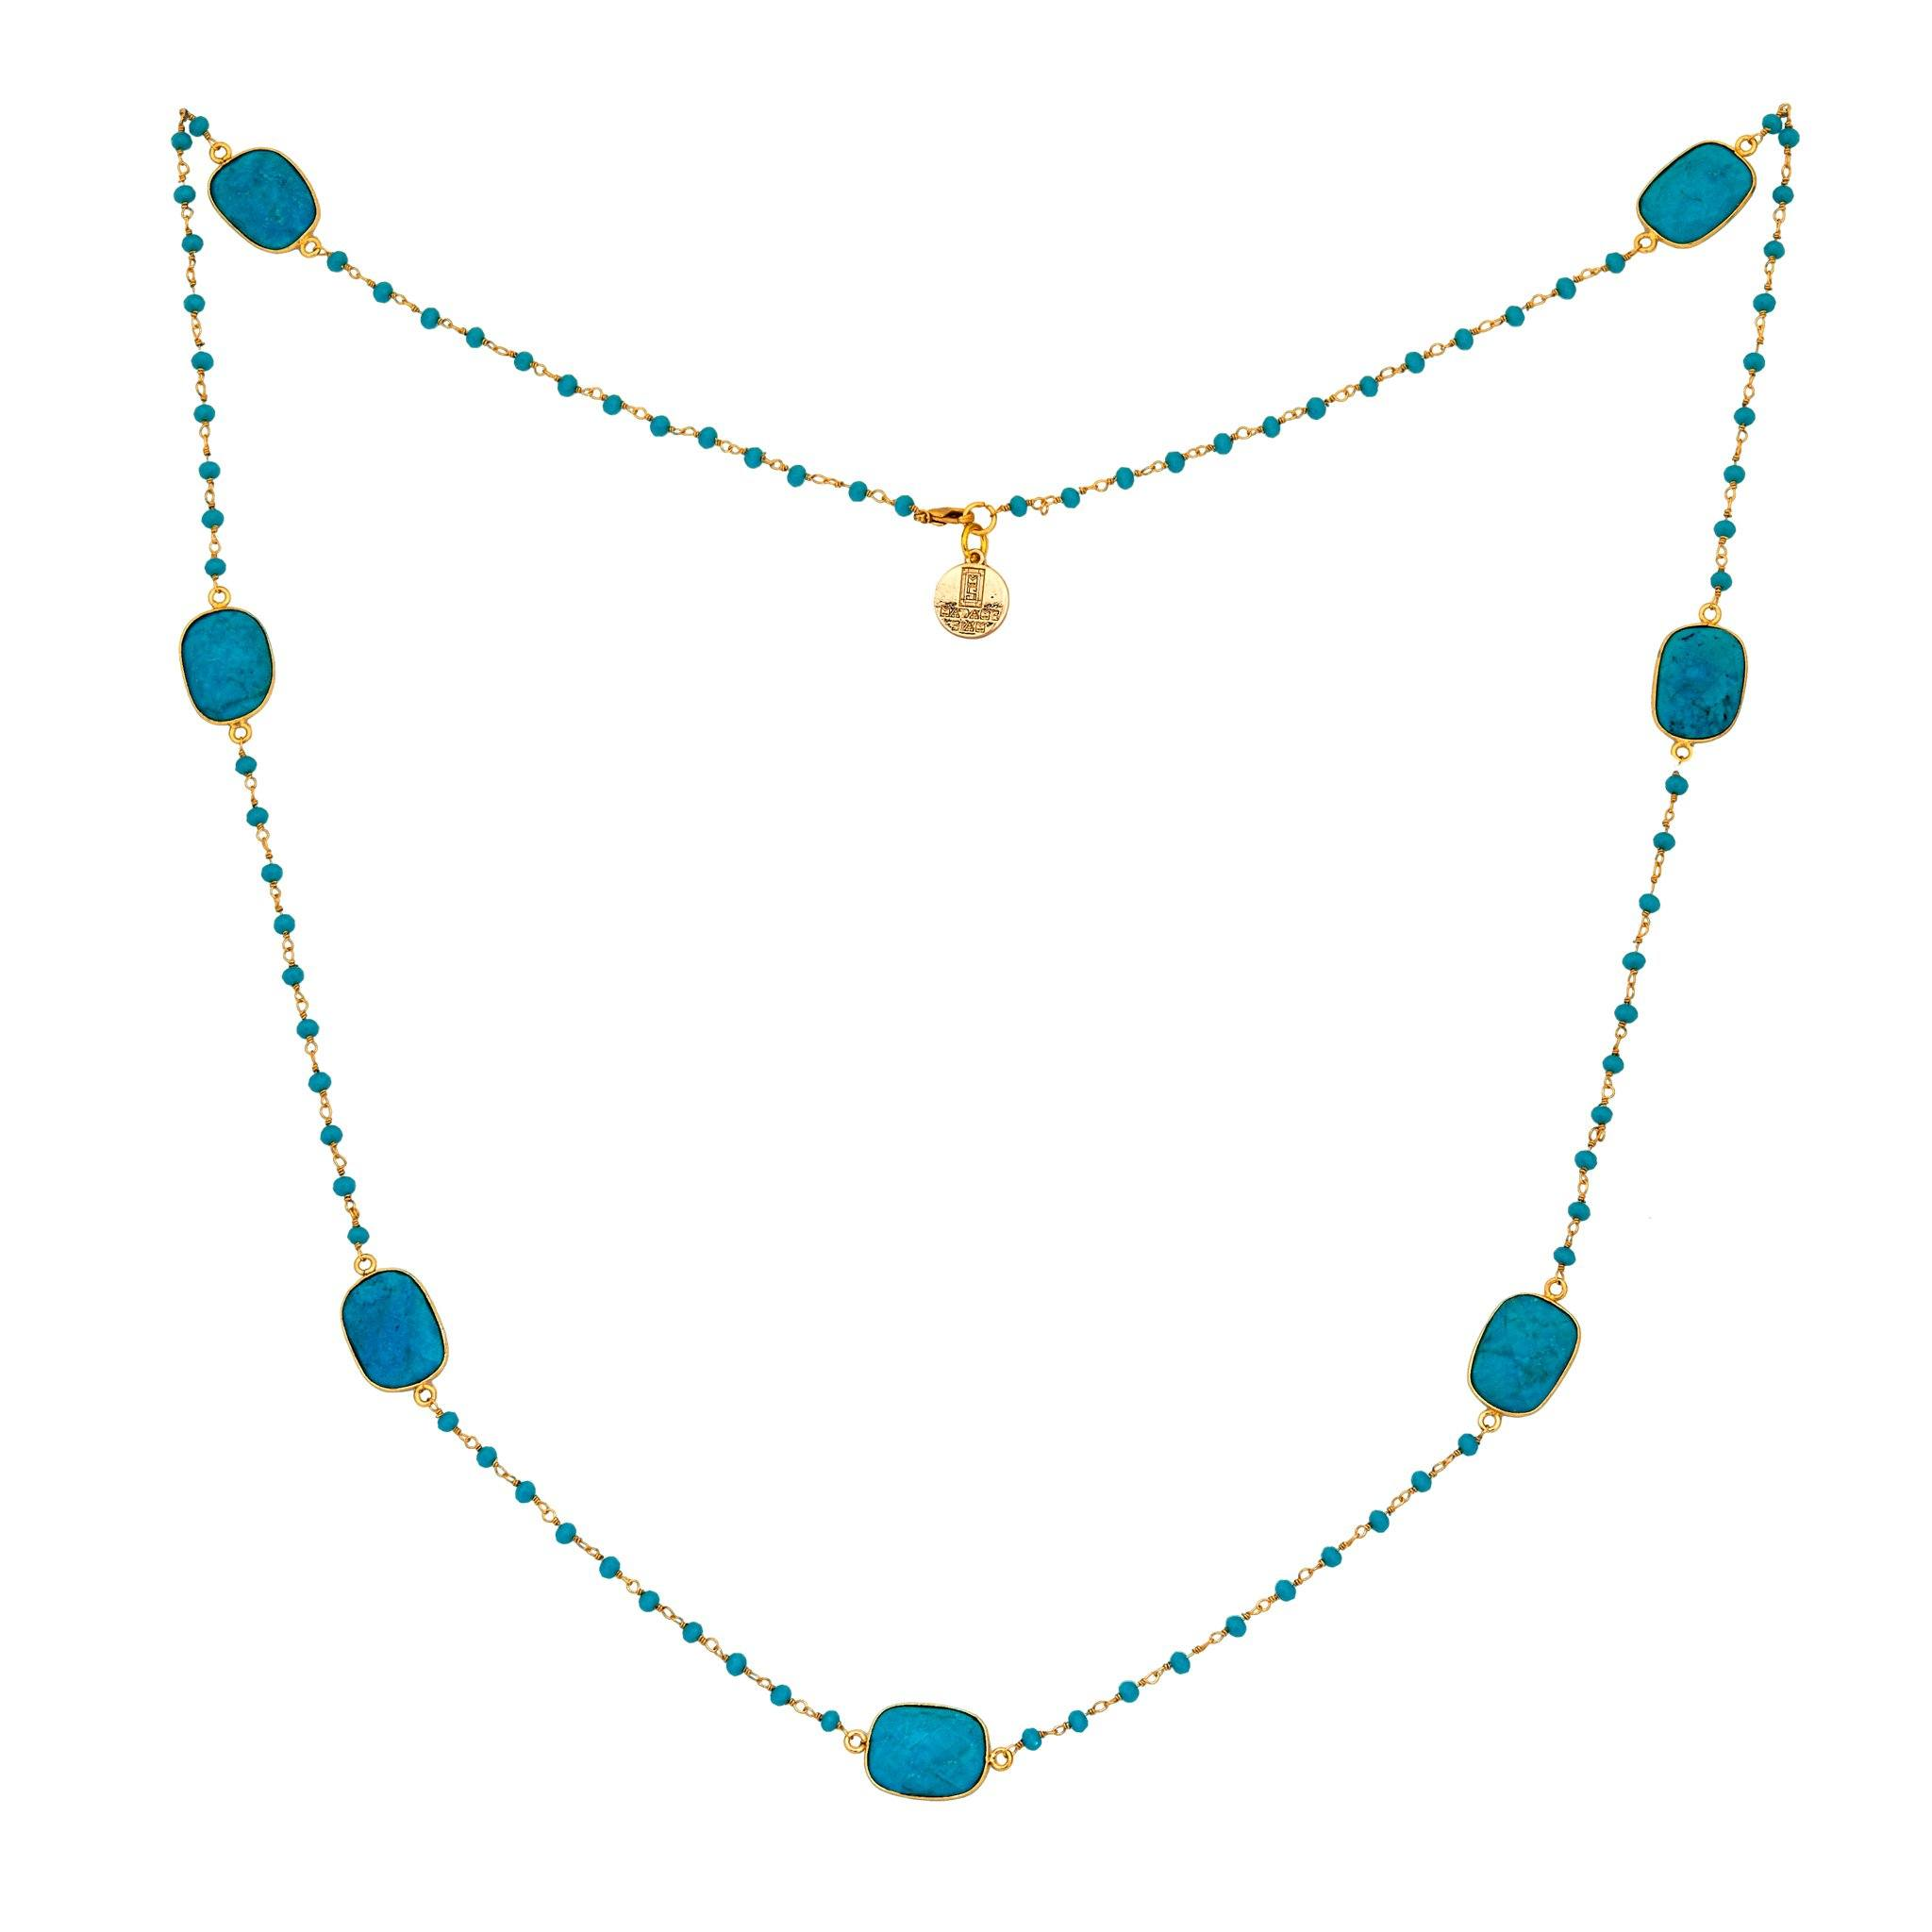 MOUSSON PERLEE turquoise station necklace with rosary chain - MadamSiam